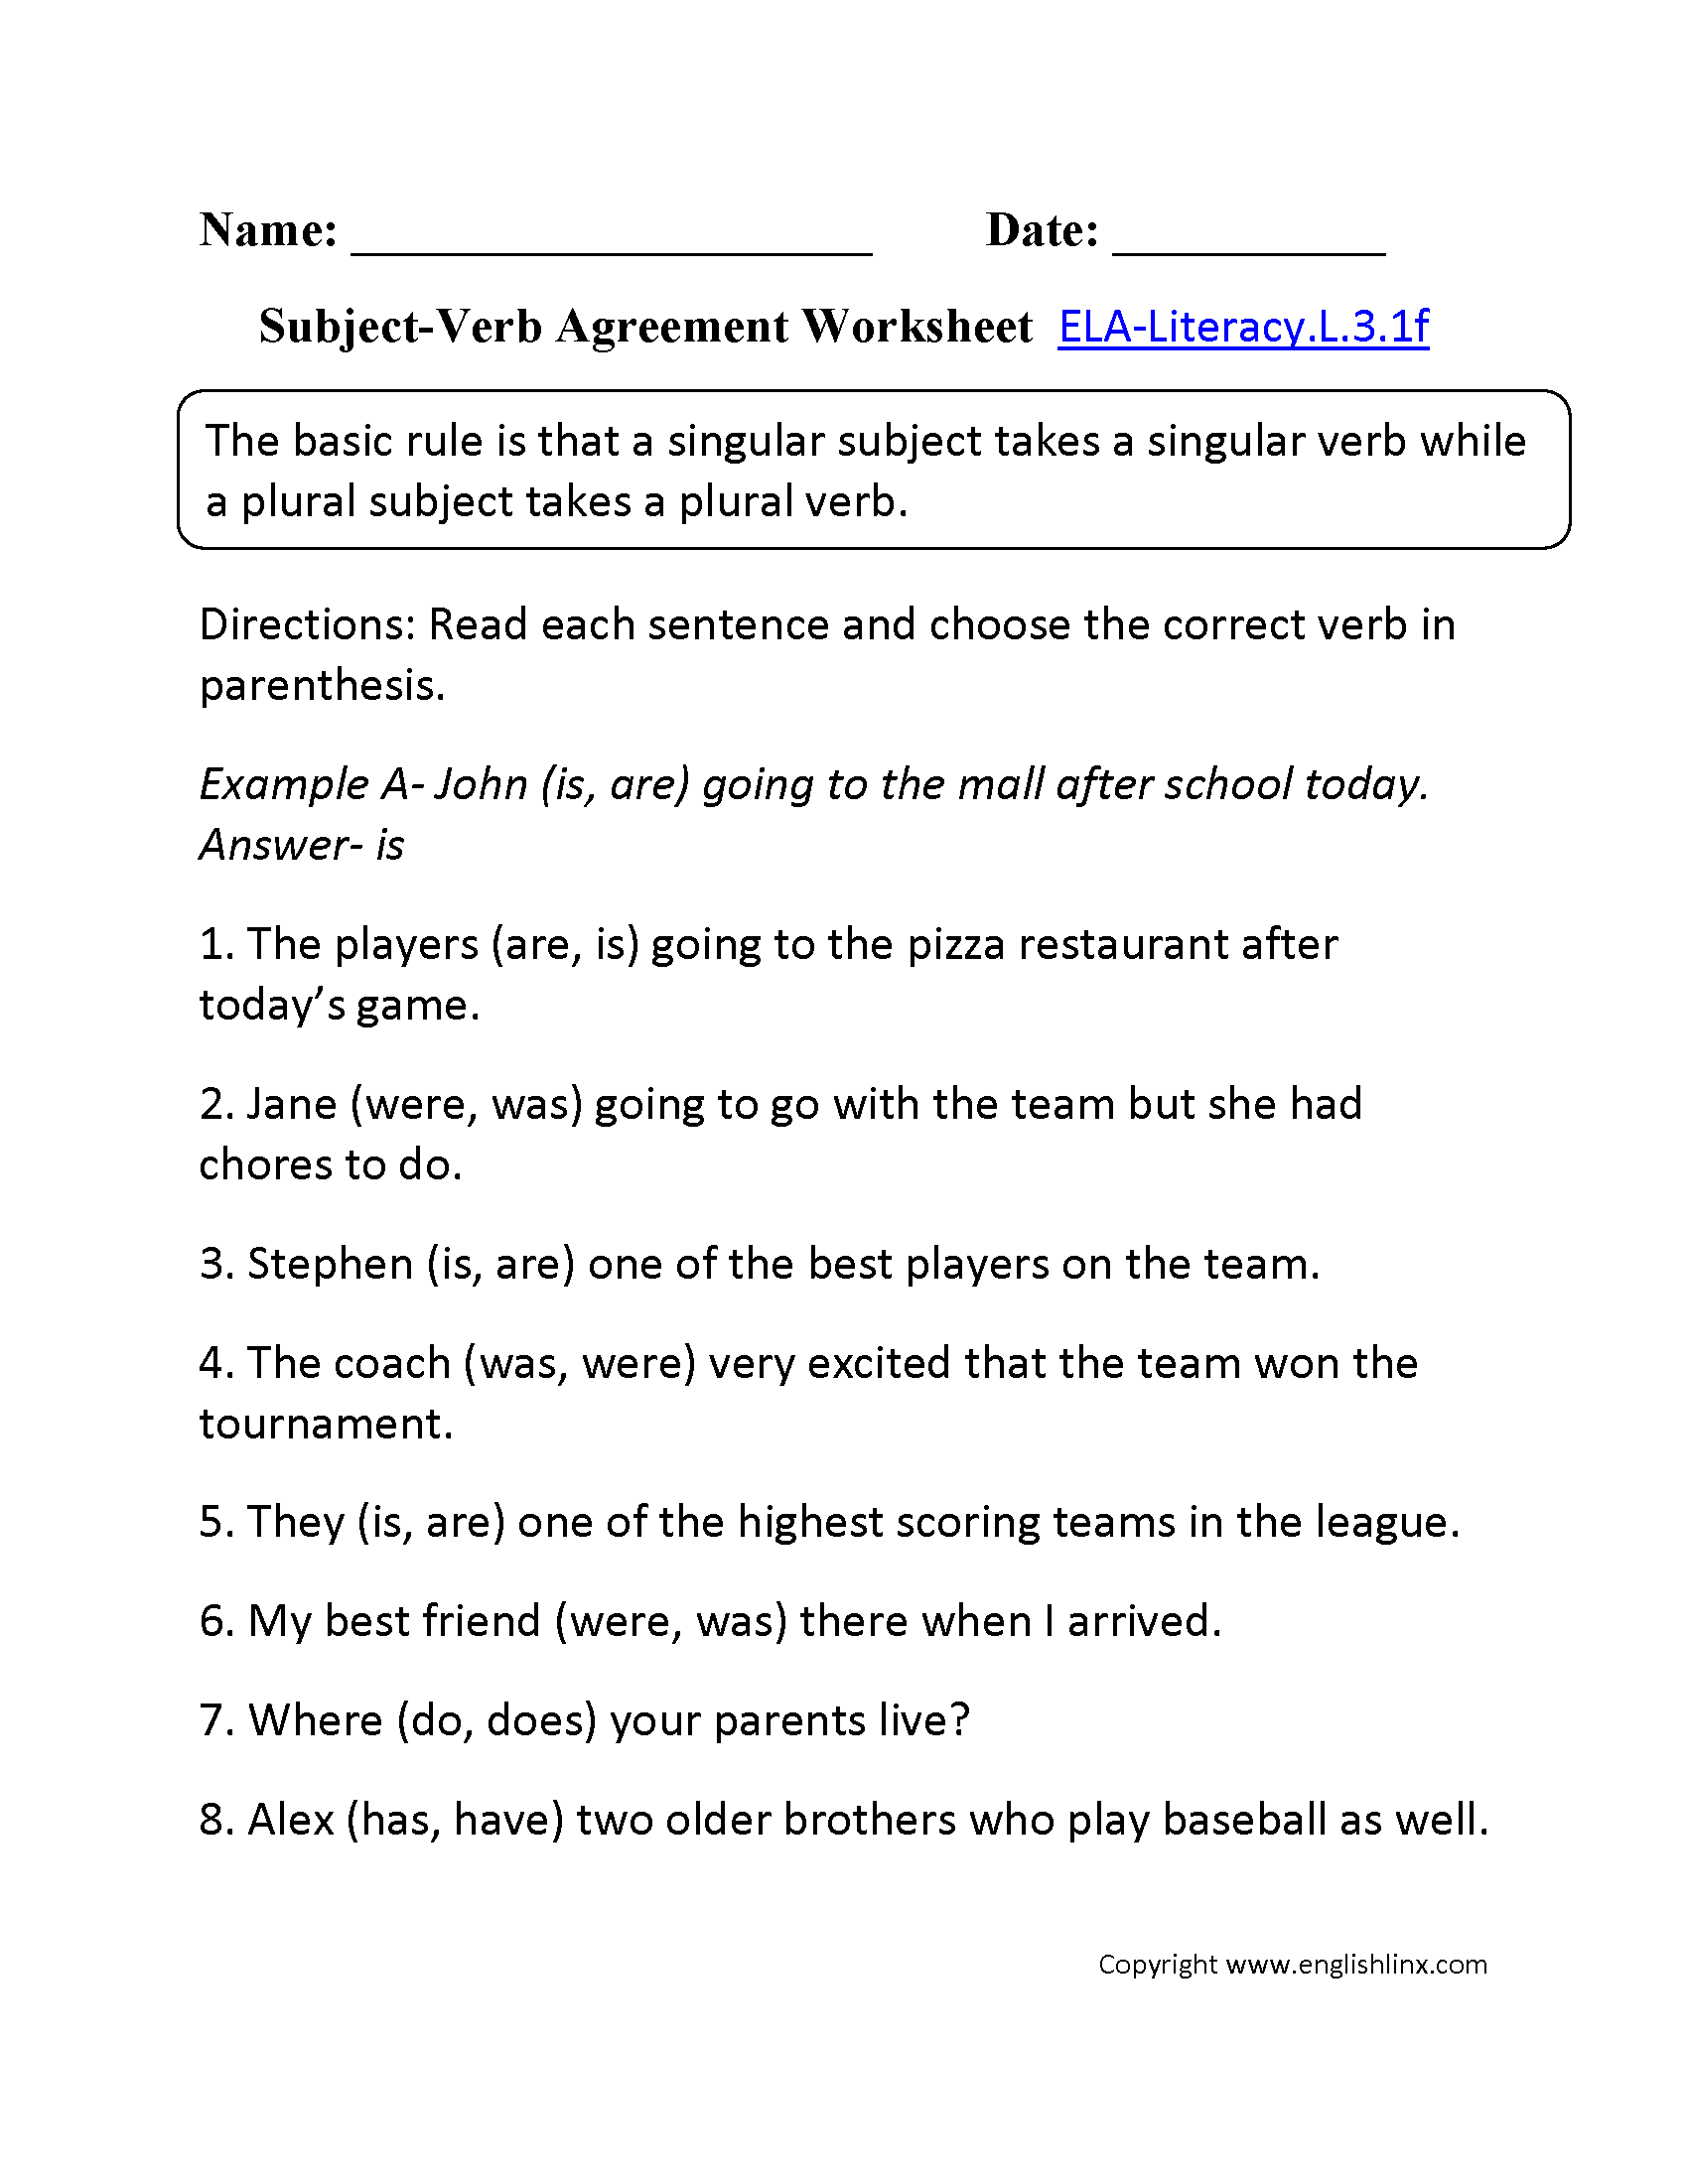 Worksheets Subject Verb Agreement Worksheets 3rd Grade subject verb agreement worksheet 2 l 3 1 pinterest 1